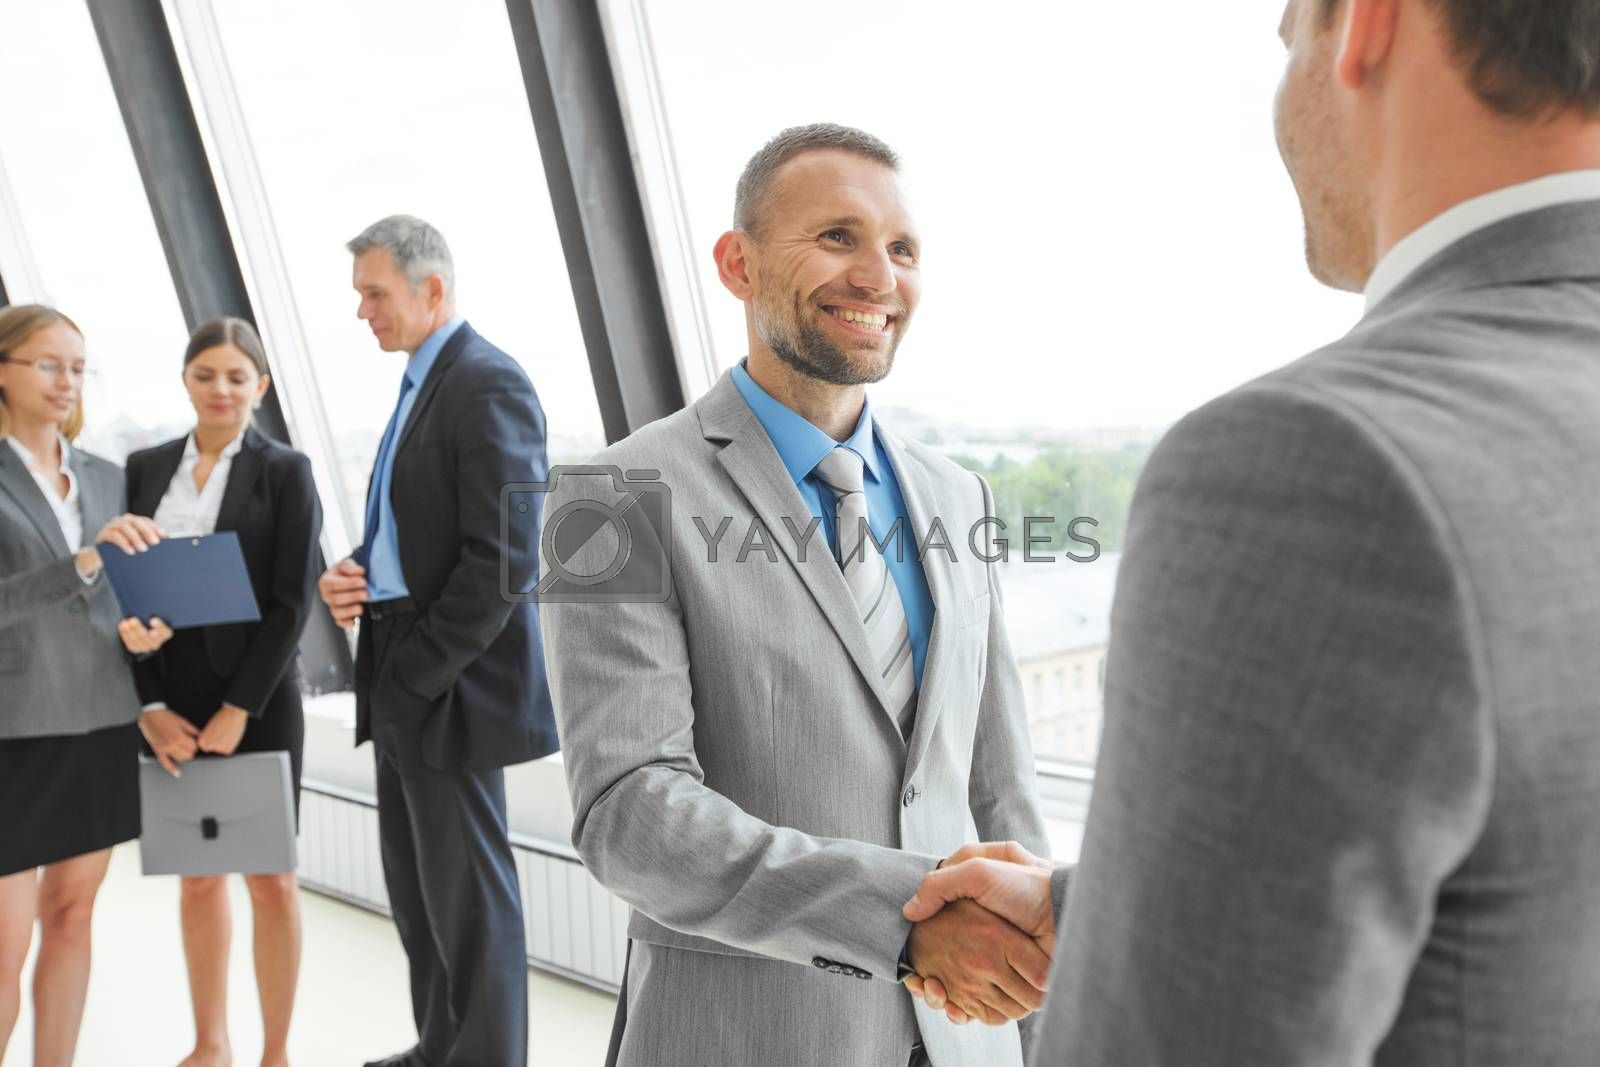 Business people handshake in office, group of colleagues on background